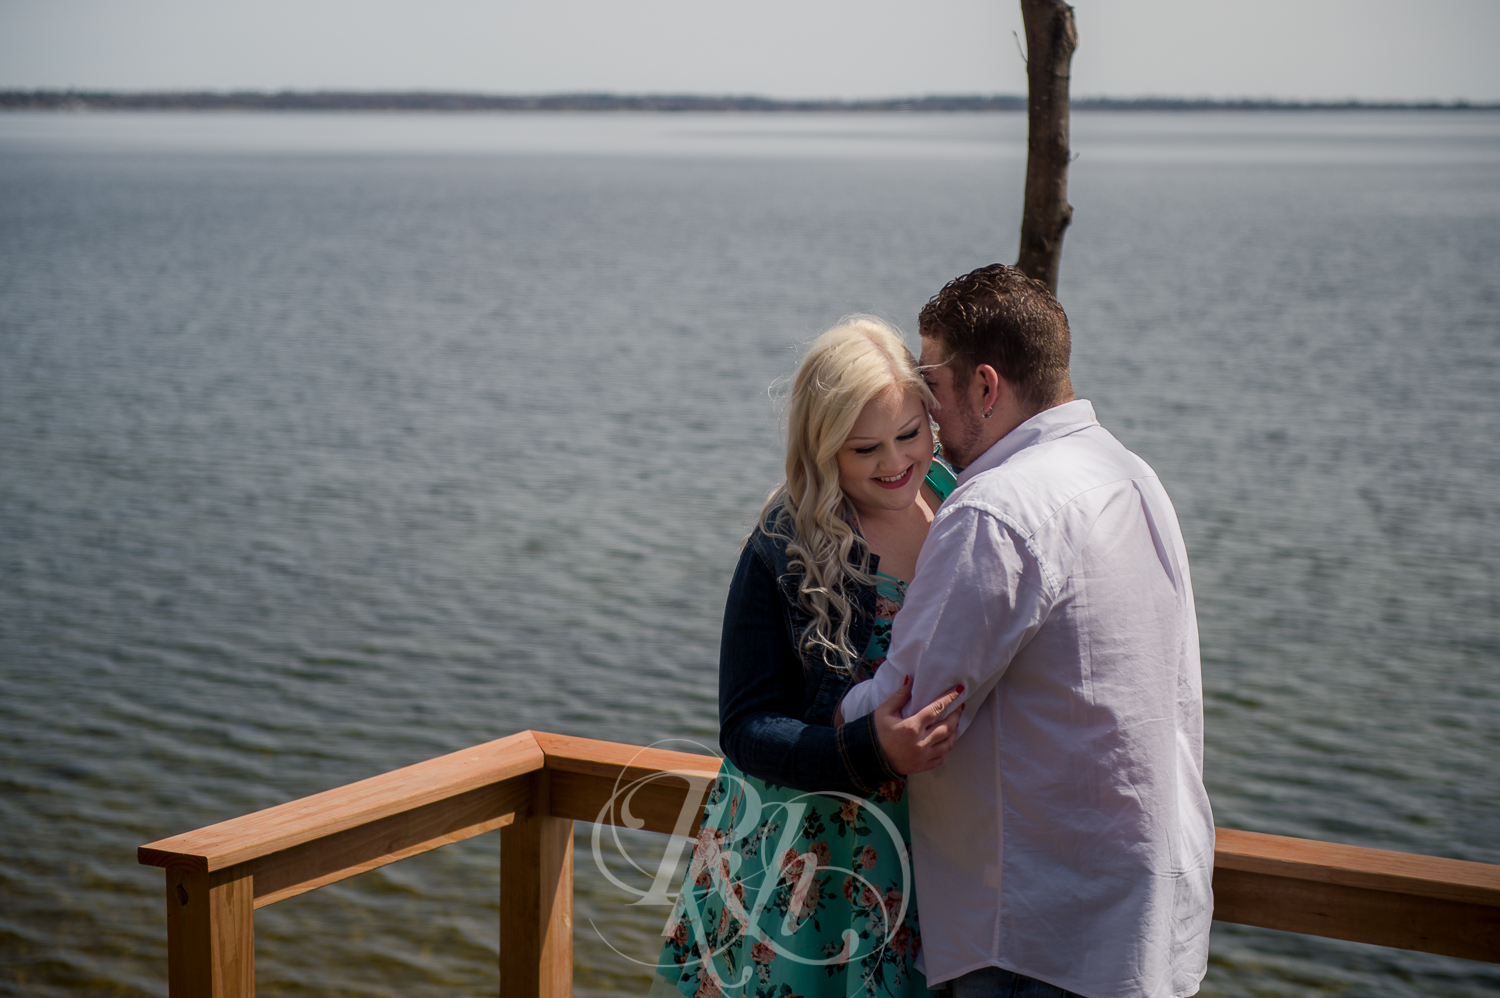 Erica & Shawn - Minnesota Engagement Photography - RKH Images -3.jpg